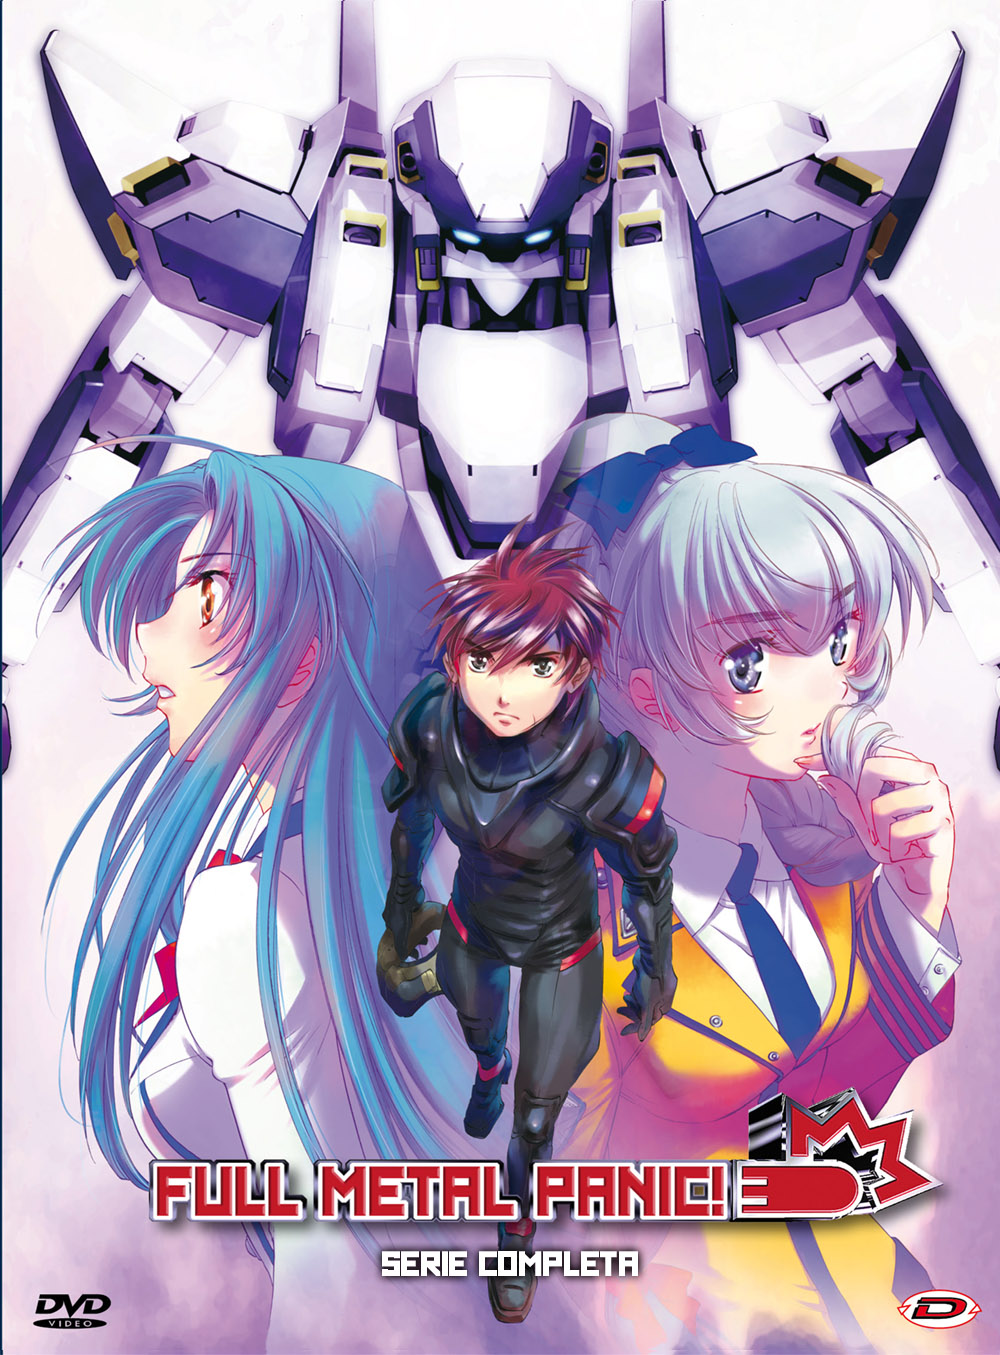 COF.FULL METAL PANIC! - THE COMPLETE SERIES (EPS 01-24) (4 DVD) (DVD)